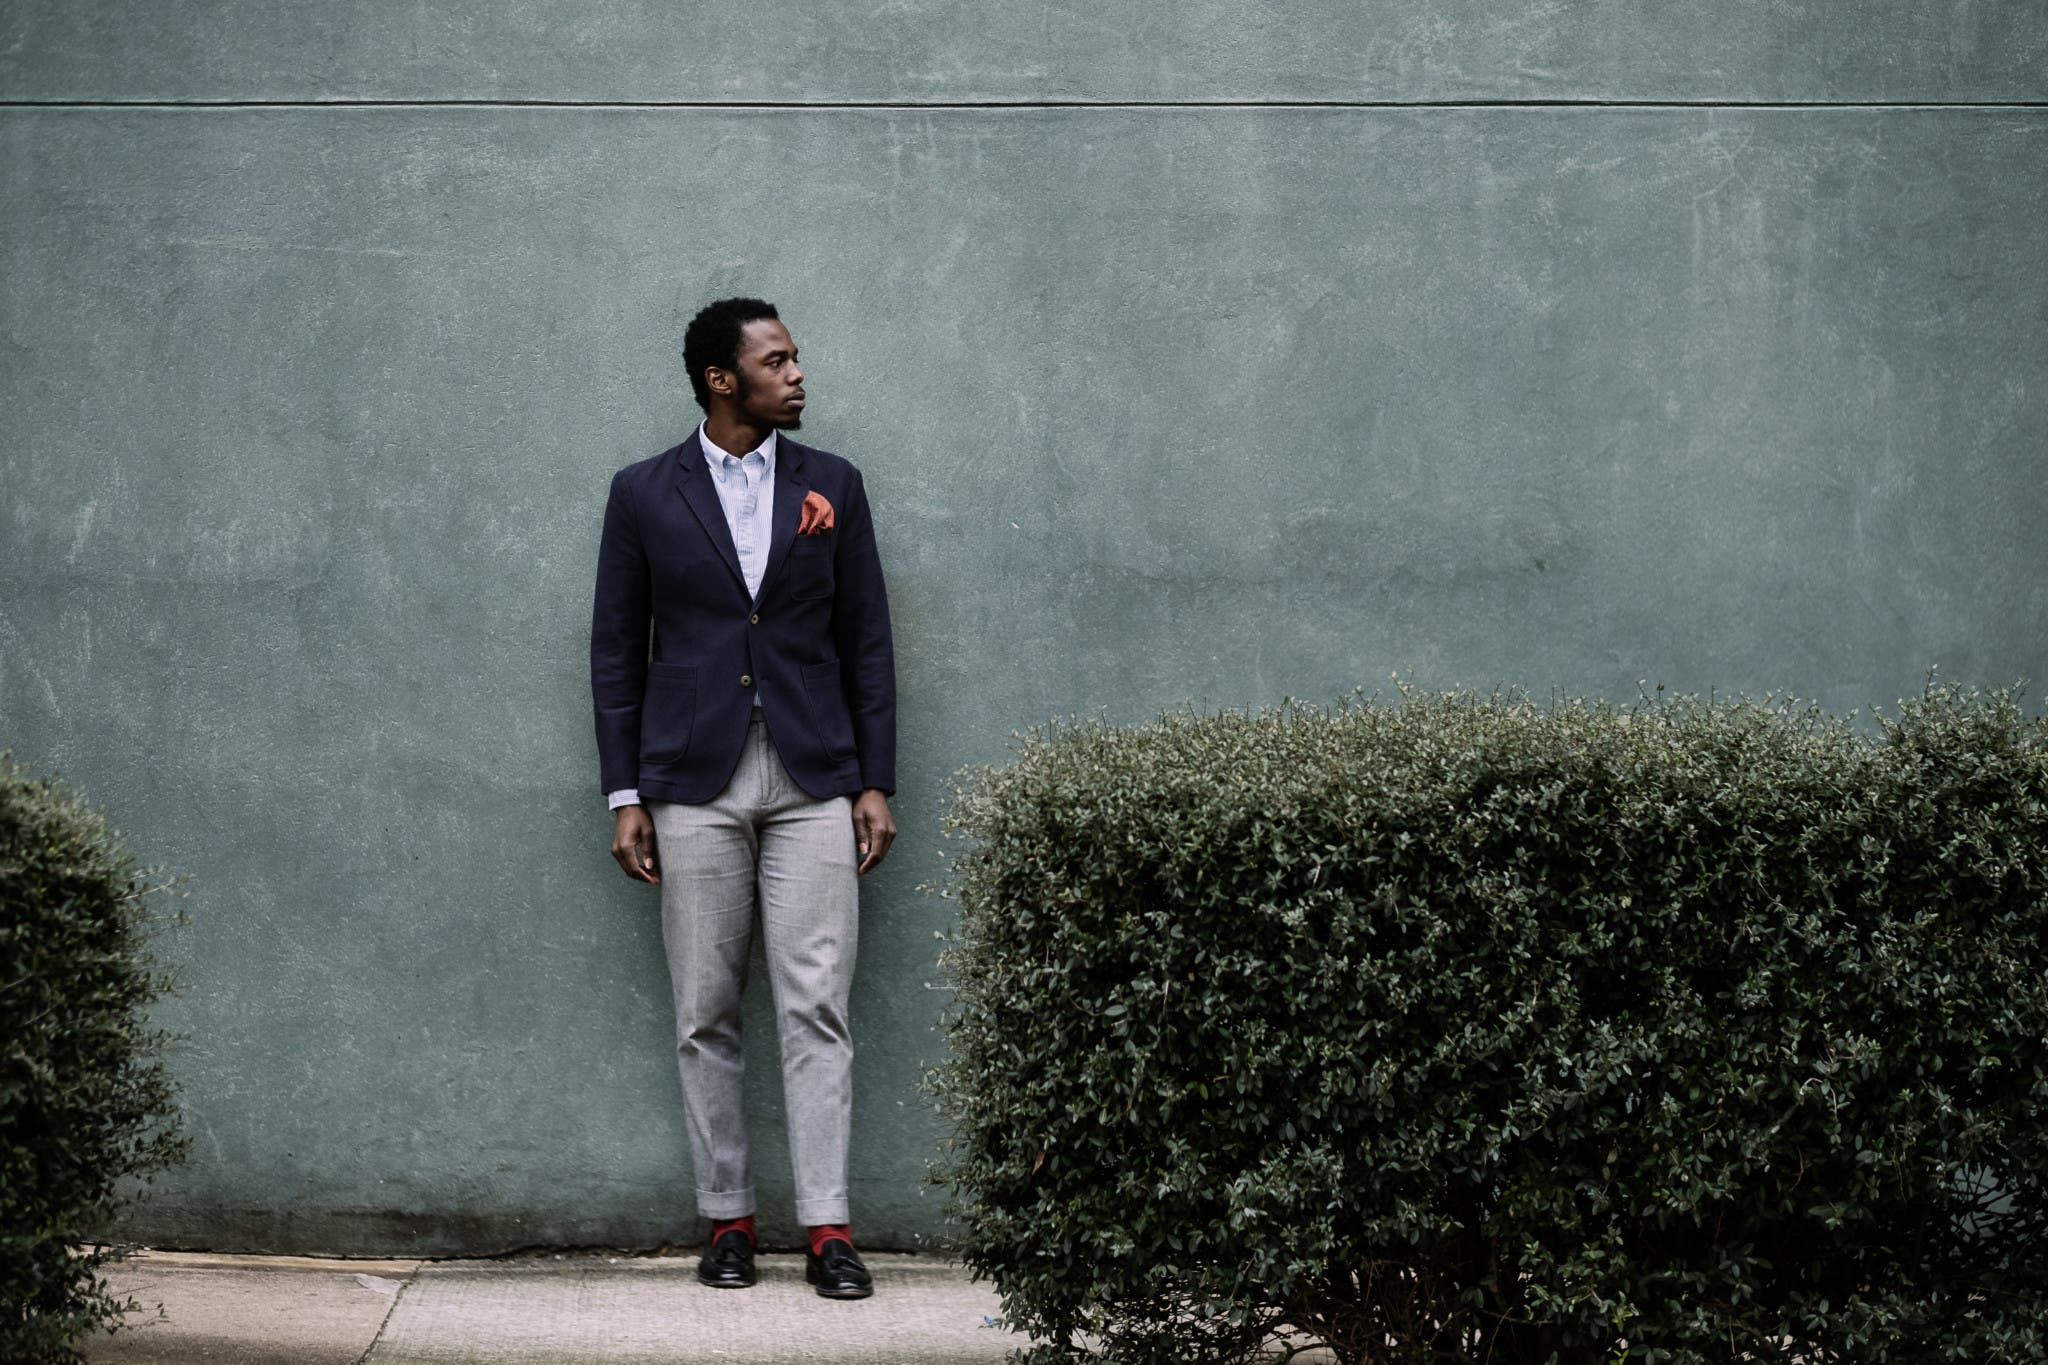 Street Fashion Portraiture Proves The South Has Style